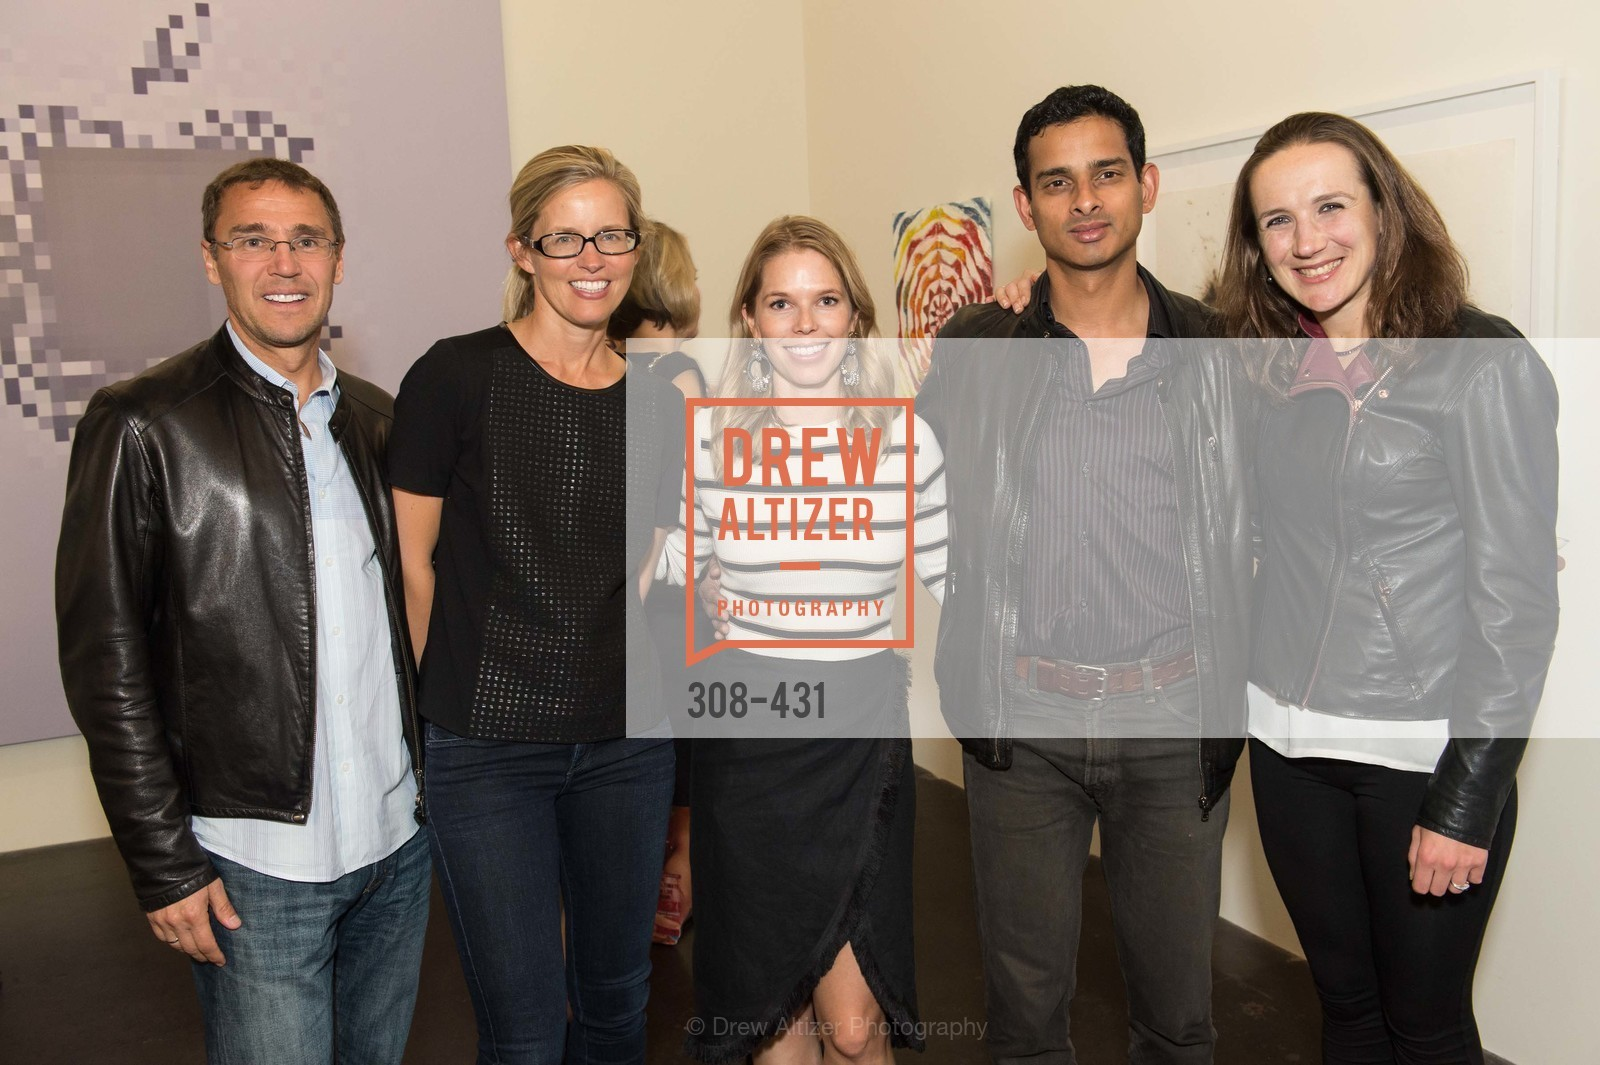 Nicole Simon, Courtney Kremers, Arjunn Rajeswarni, Artsy + Sotheby's Closing Party, Fused. 1401 16th Street, October 30th, 2015,Drew Altizer, Drew Altizer Photography, full-service agency, private events, San Francisco photographer, photographer california